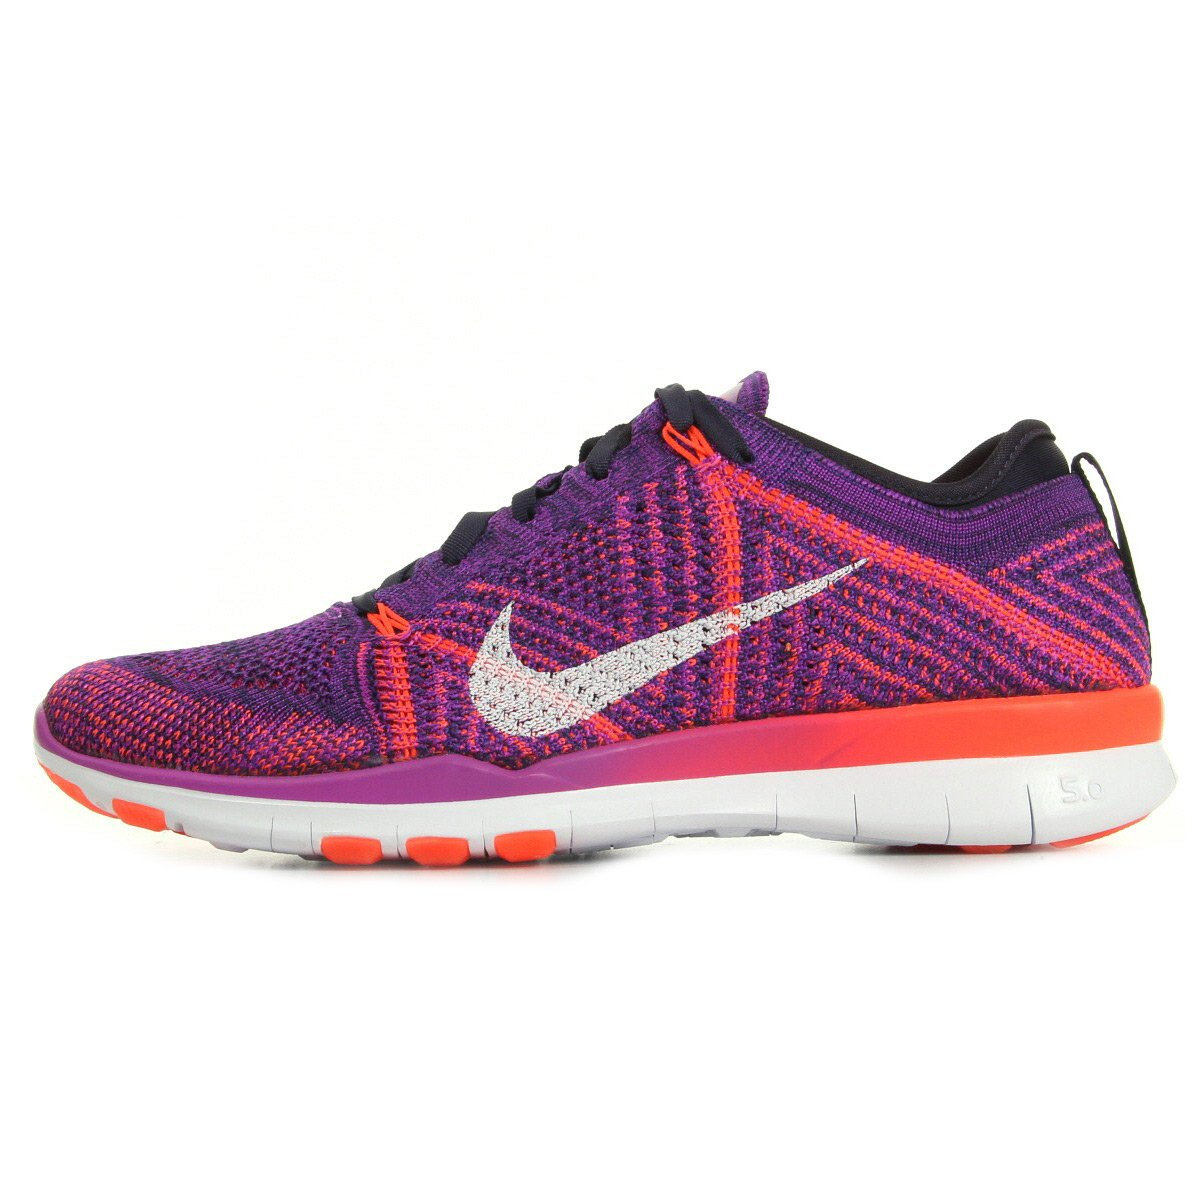 cheap for discount 0f019 eaf5b Nike Womens Free TR Flyknit Running Shoes (7. 5 B(M) US, Hyper  Volt White-Total Crimson-Purple)  Amazon.in  Shoes   Handbags